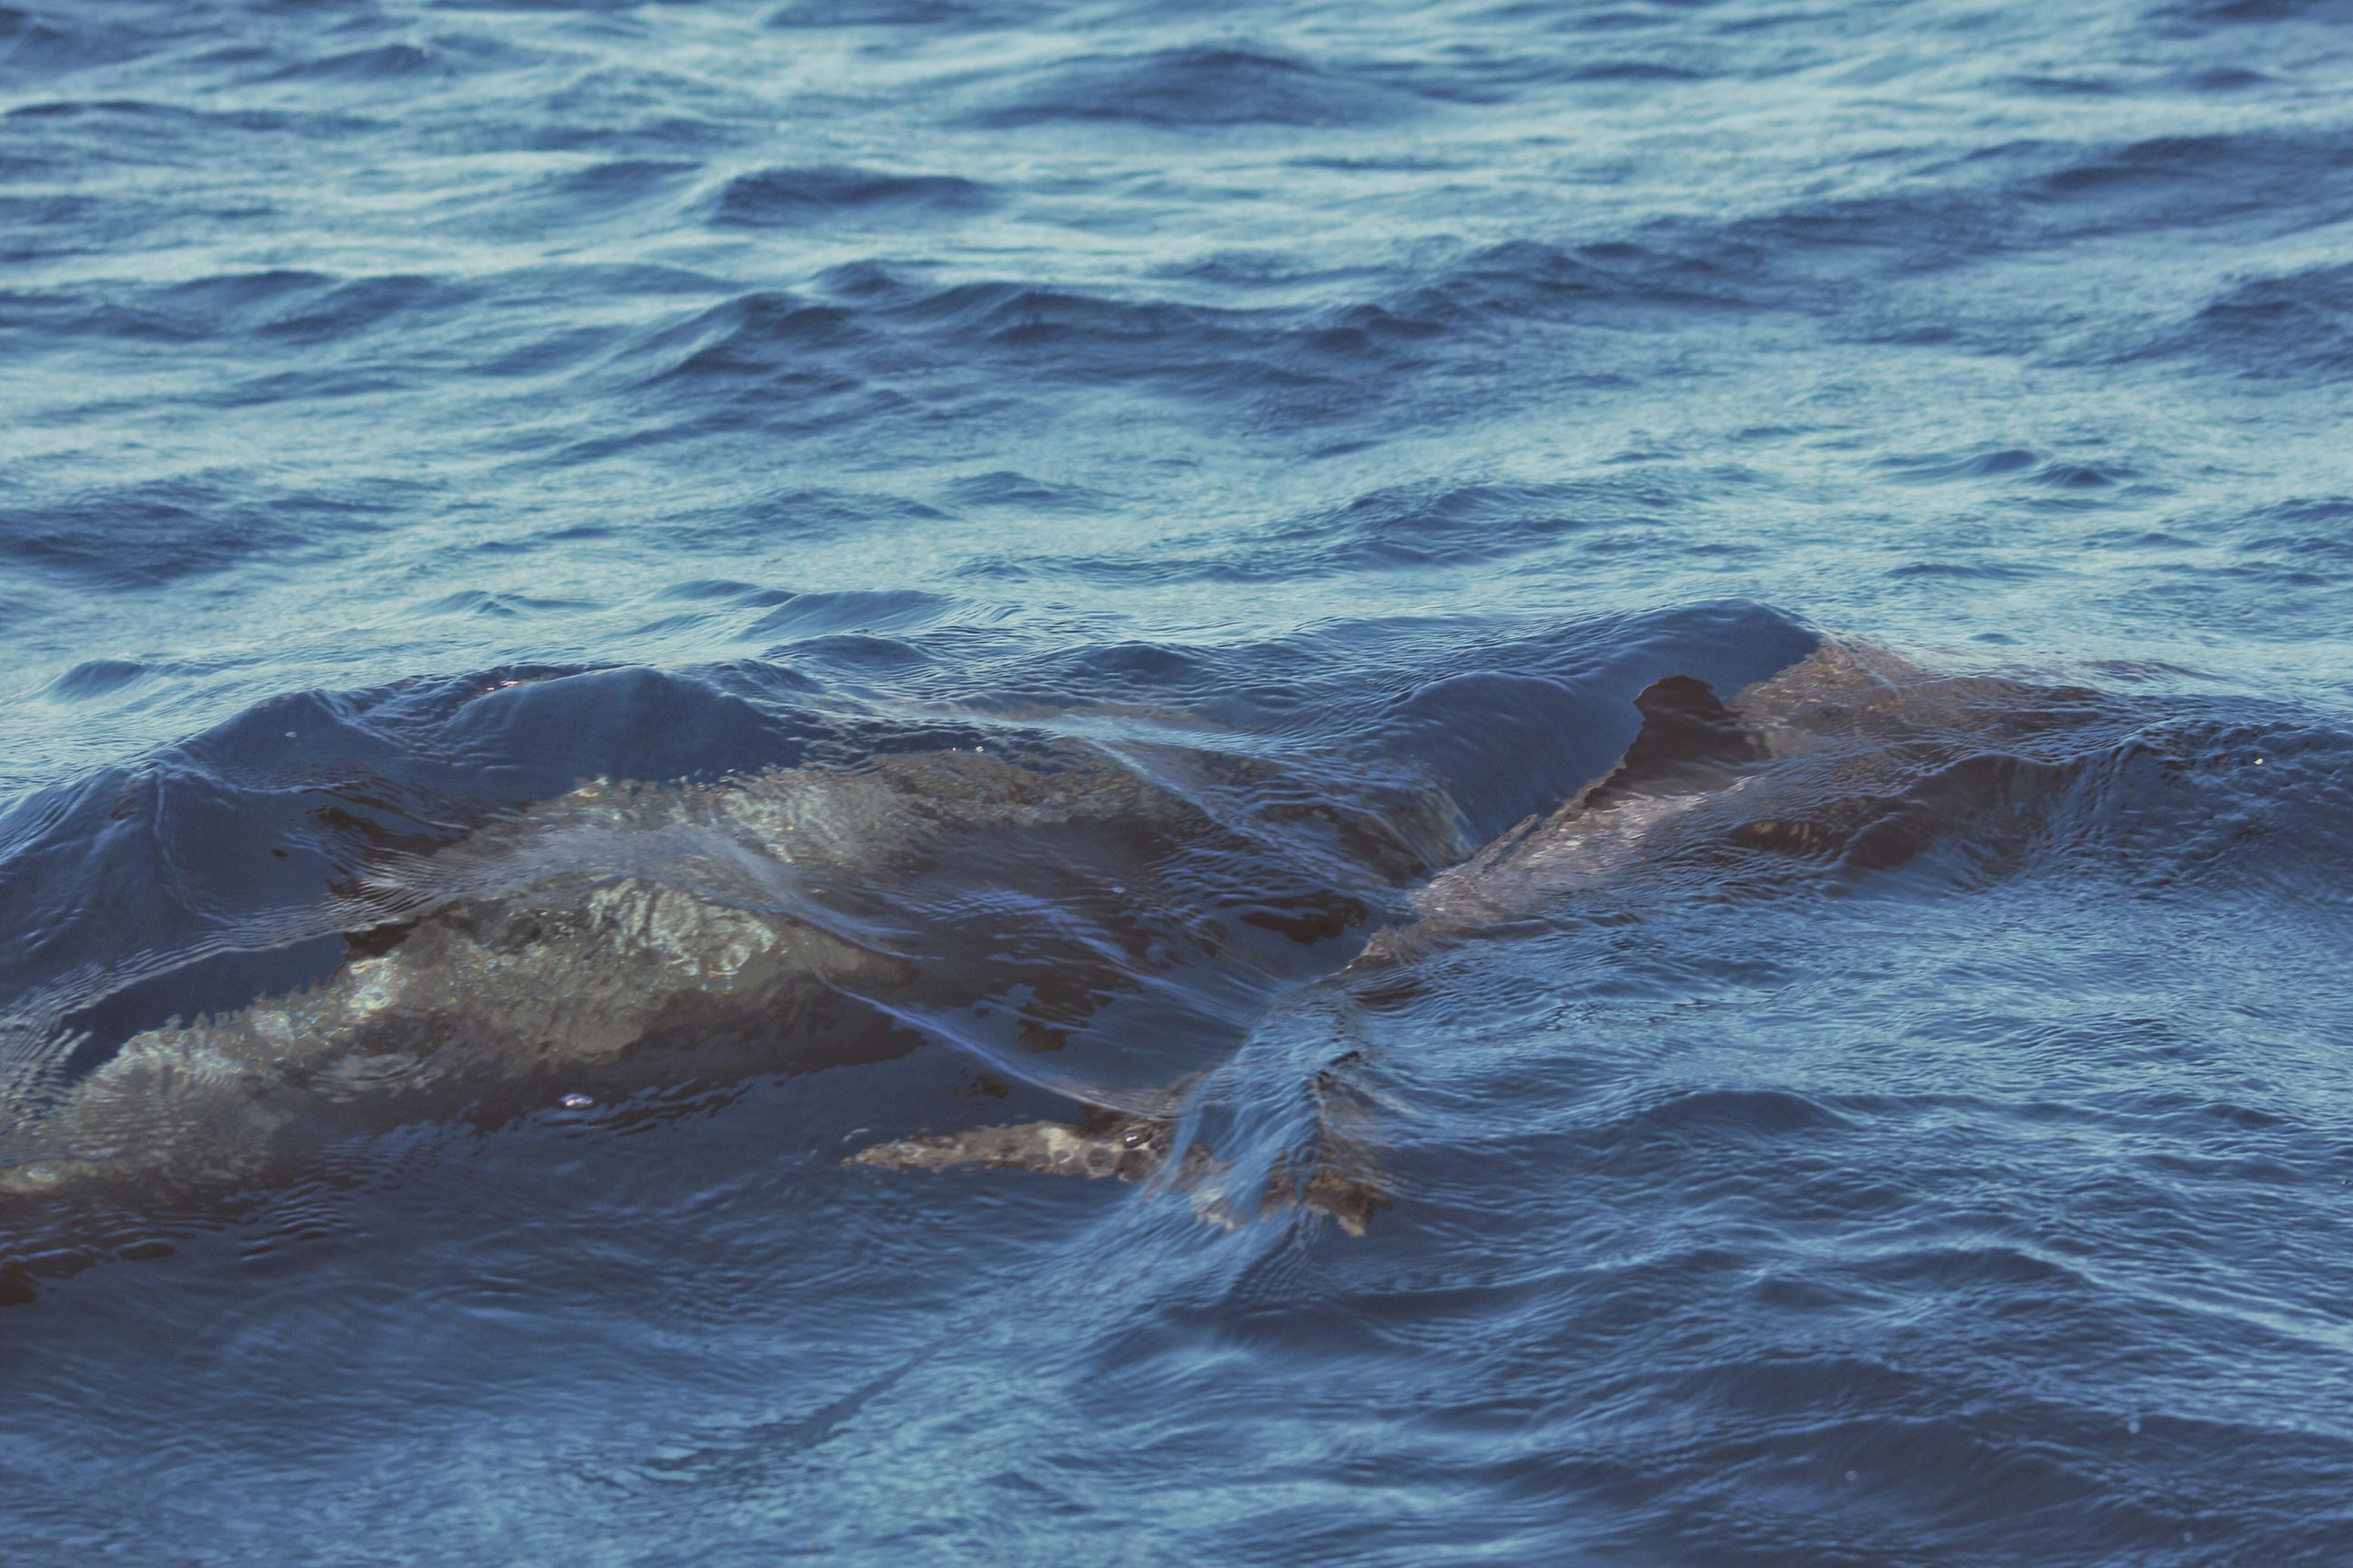 water, animal themes, sea, animals in the wild, swimming, one animal, no people, nature, waterfront, sea life, animal wildlife, day, beauty in nature, close-up, outdoors, mammal, undersea